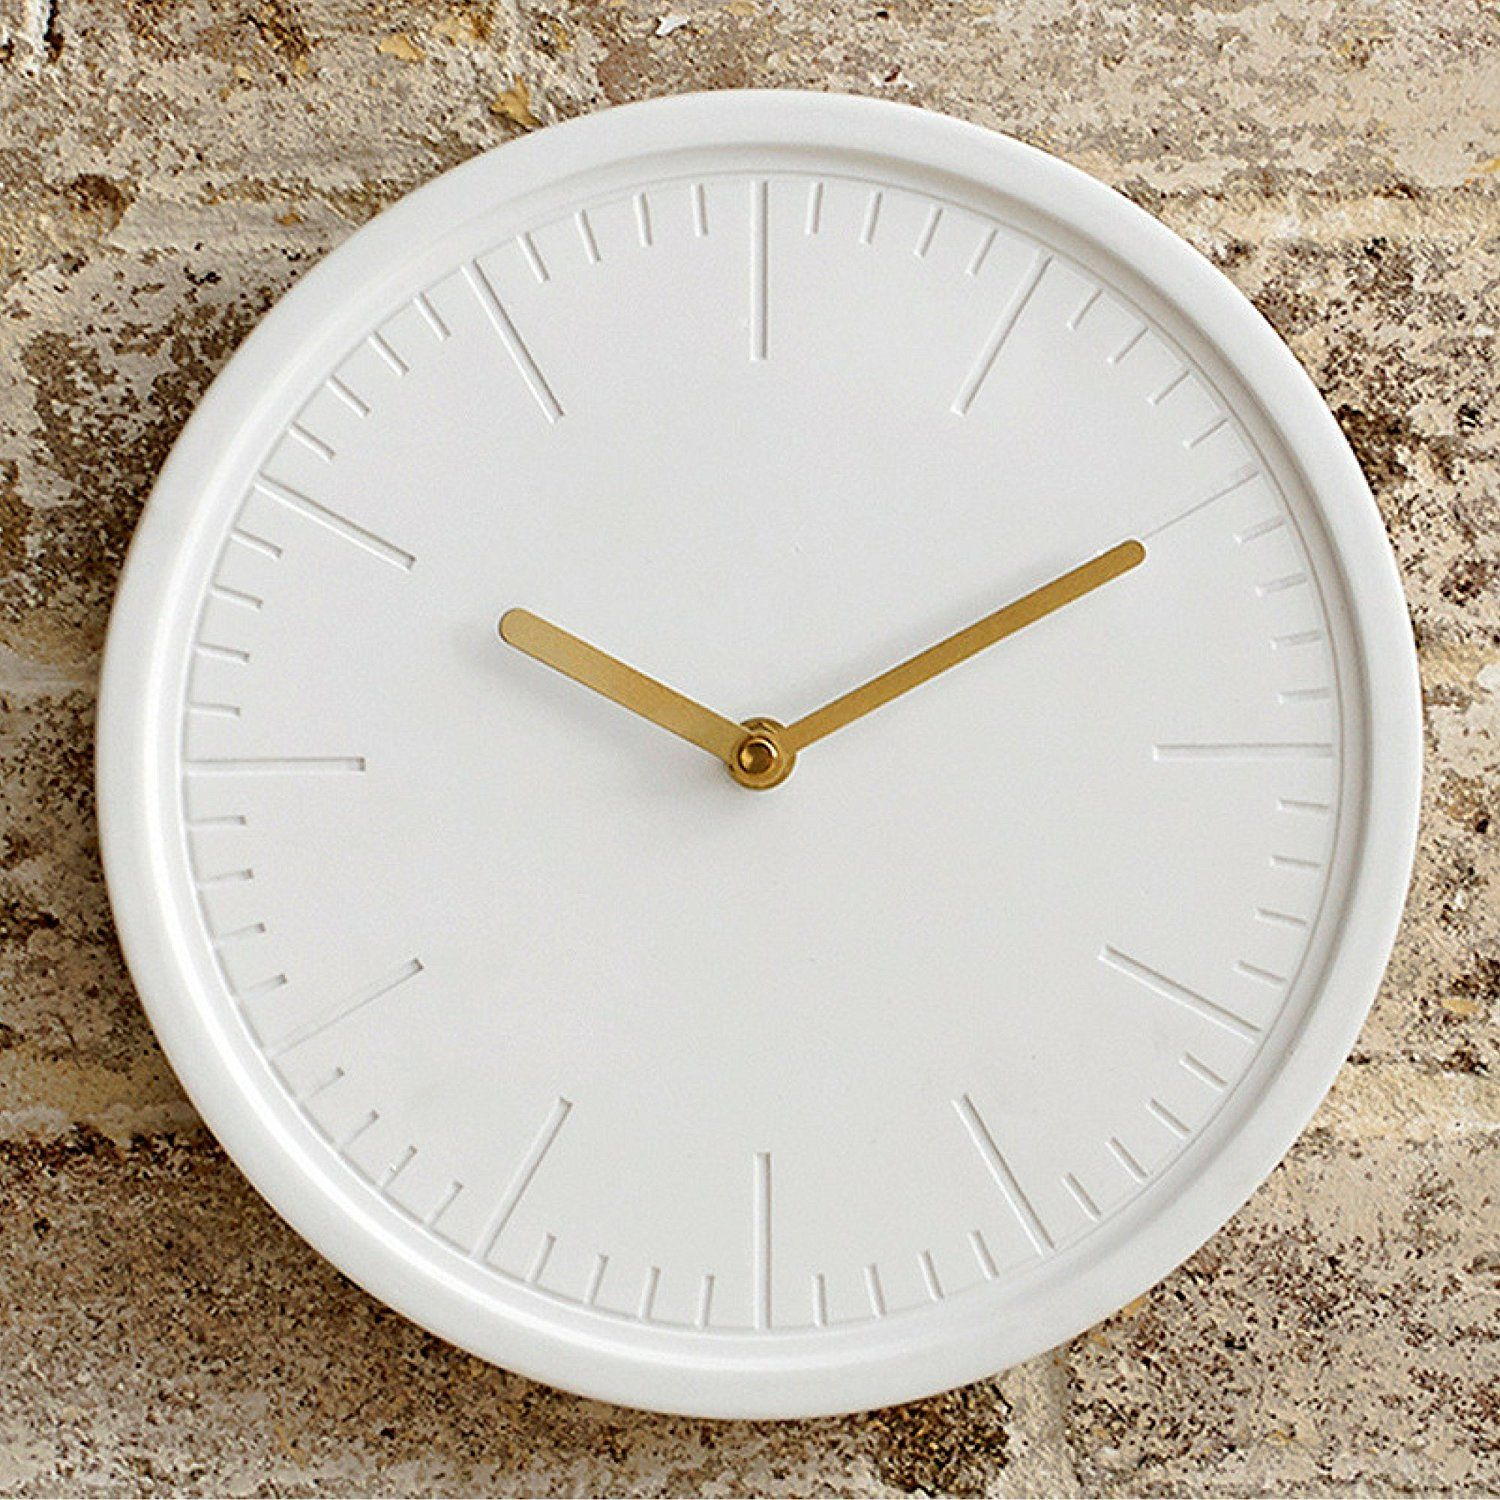 Amazon Com White Wall Clock By Beautiful Things Online Round 10 Inch Ceramic Face Gold Hands Silent Quar Clock Wall Decor White Wall Clocks Wall Clock